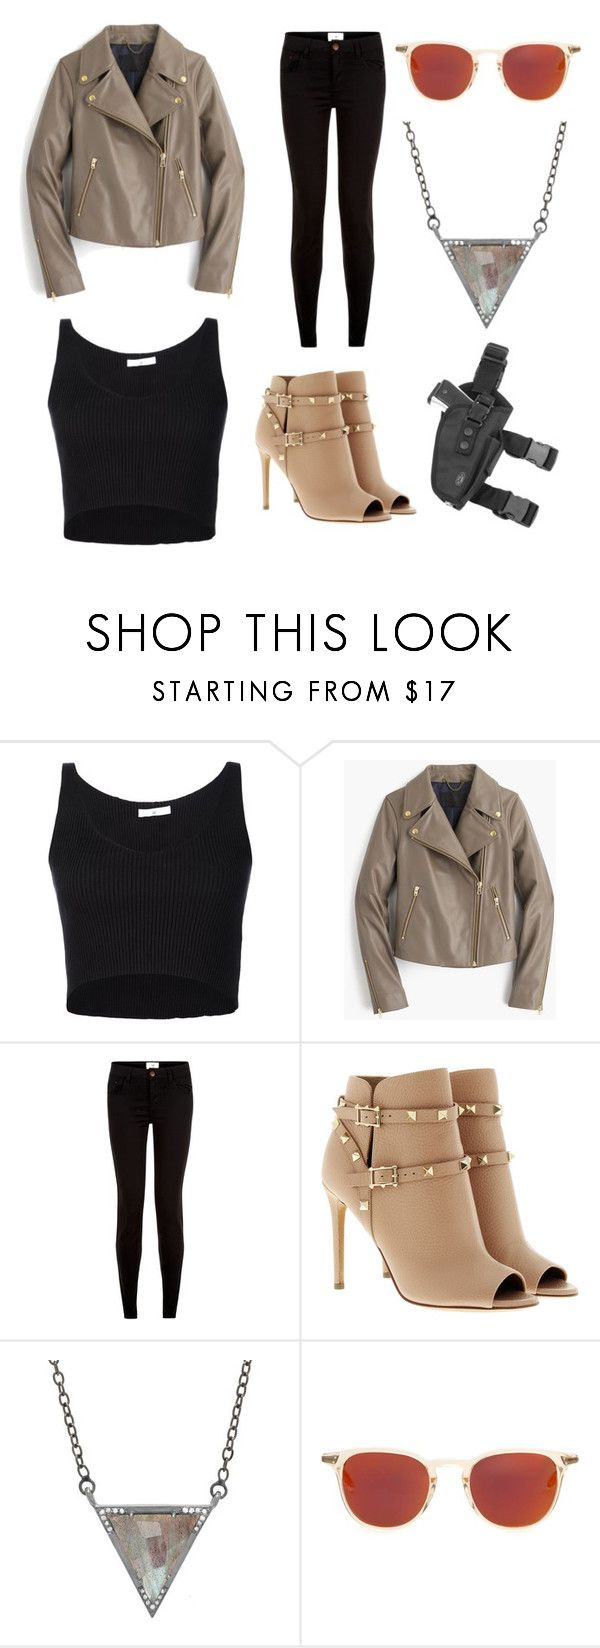 """NATASHA ROMANOFF"" by carolinelaufeyson ❤ liked on Polyvore featuring 321, J.Crew, New Look, Valentino, ADORNIA and Oliver Peoples"